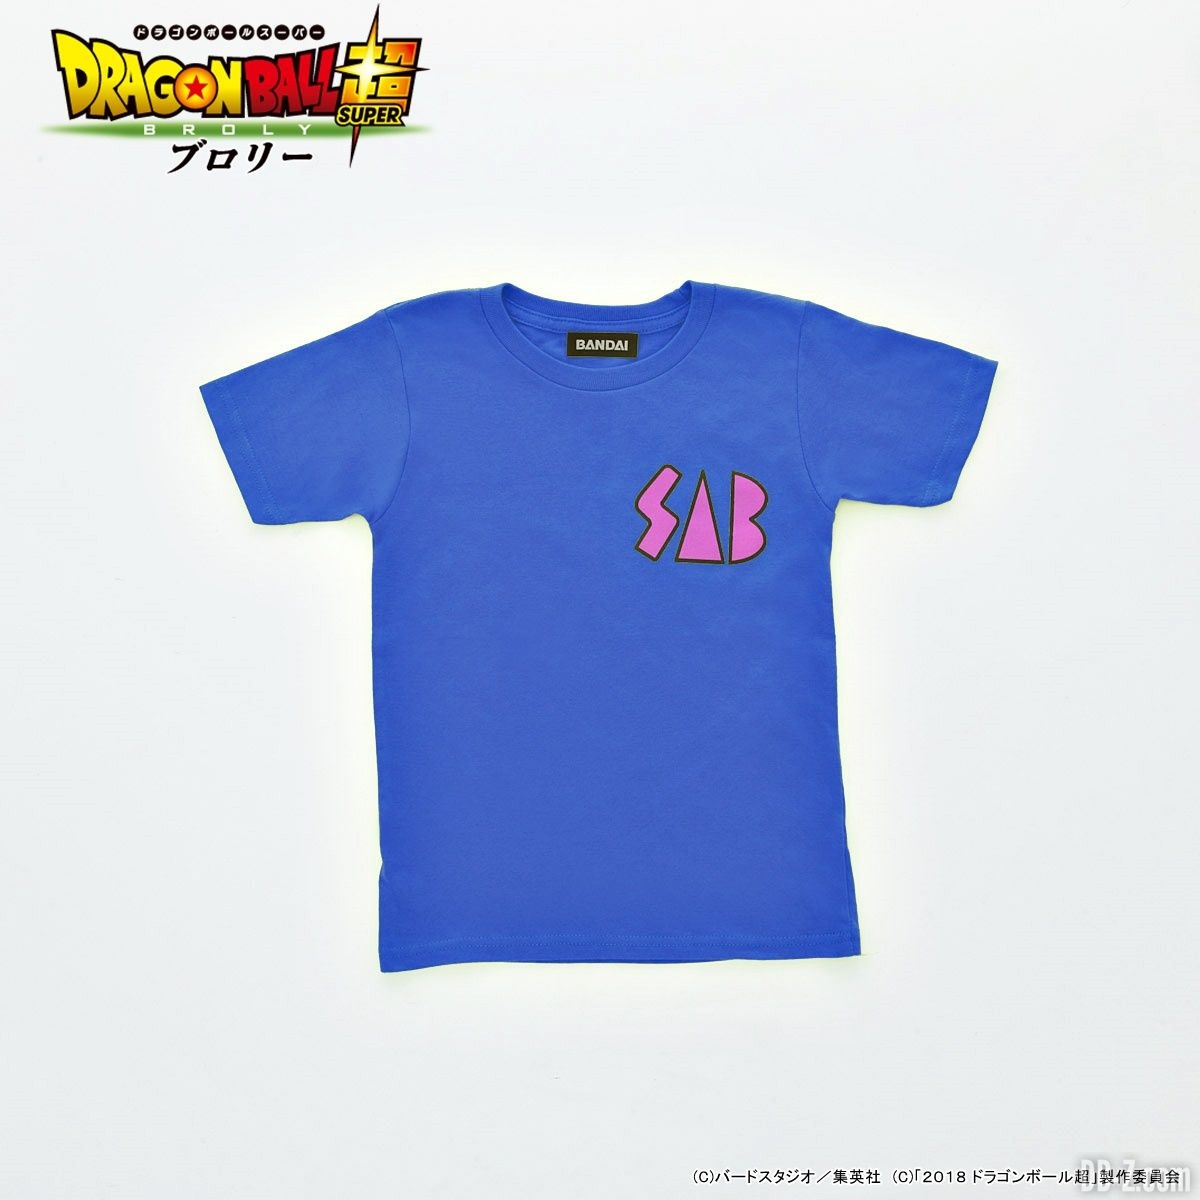 Dragon Ball Super - T-shirt SAB Goku